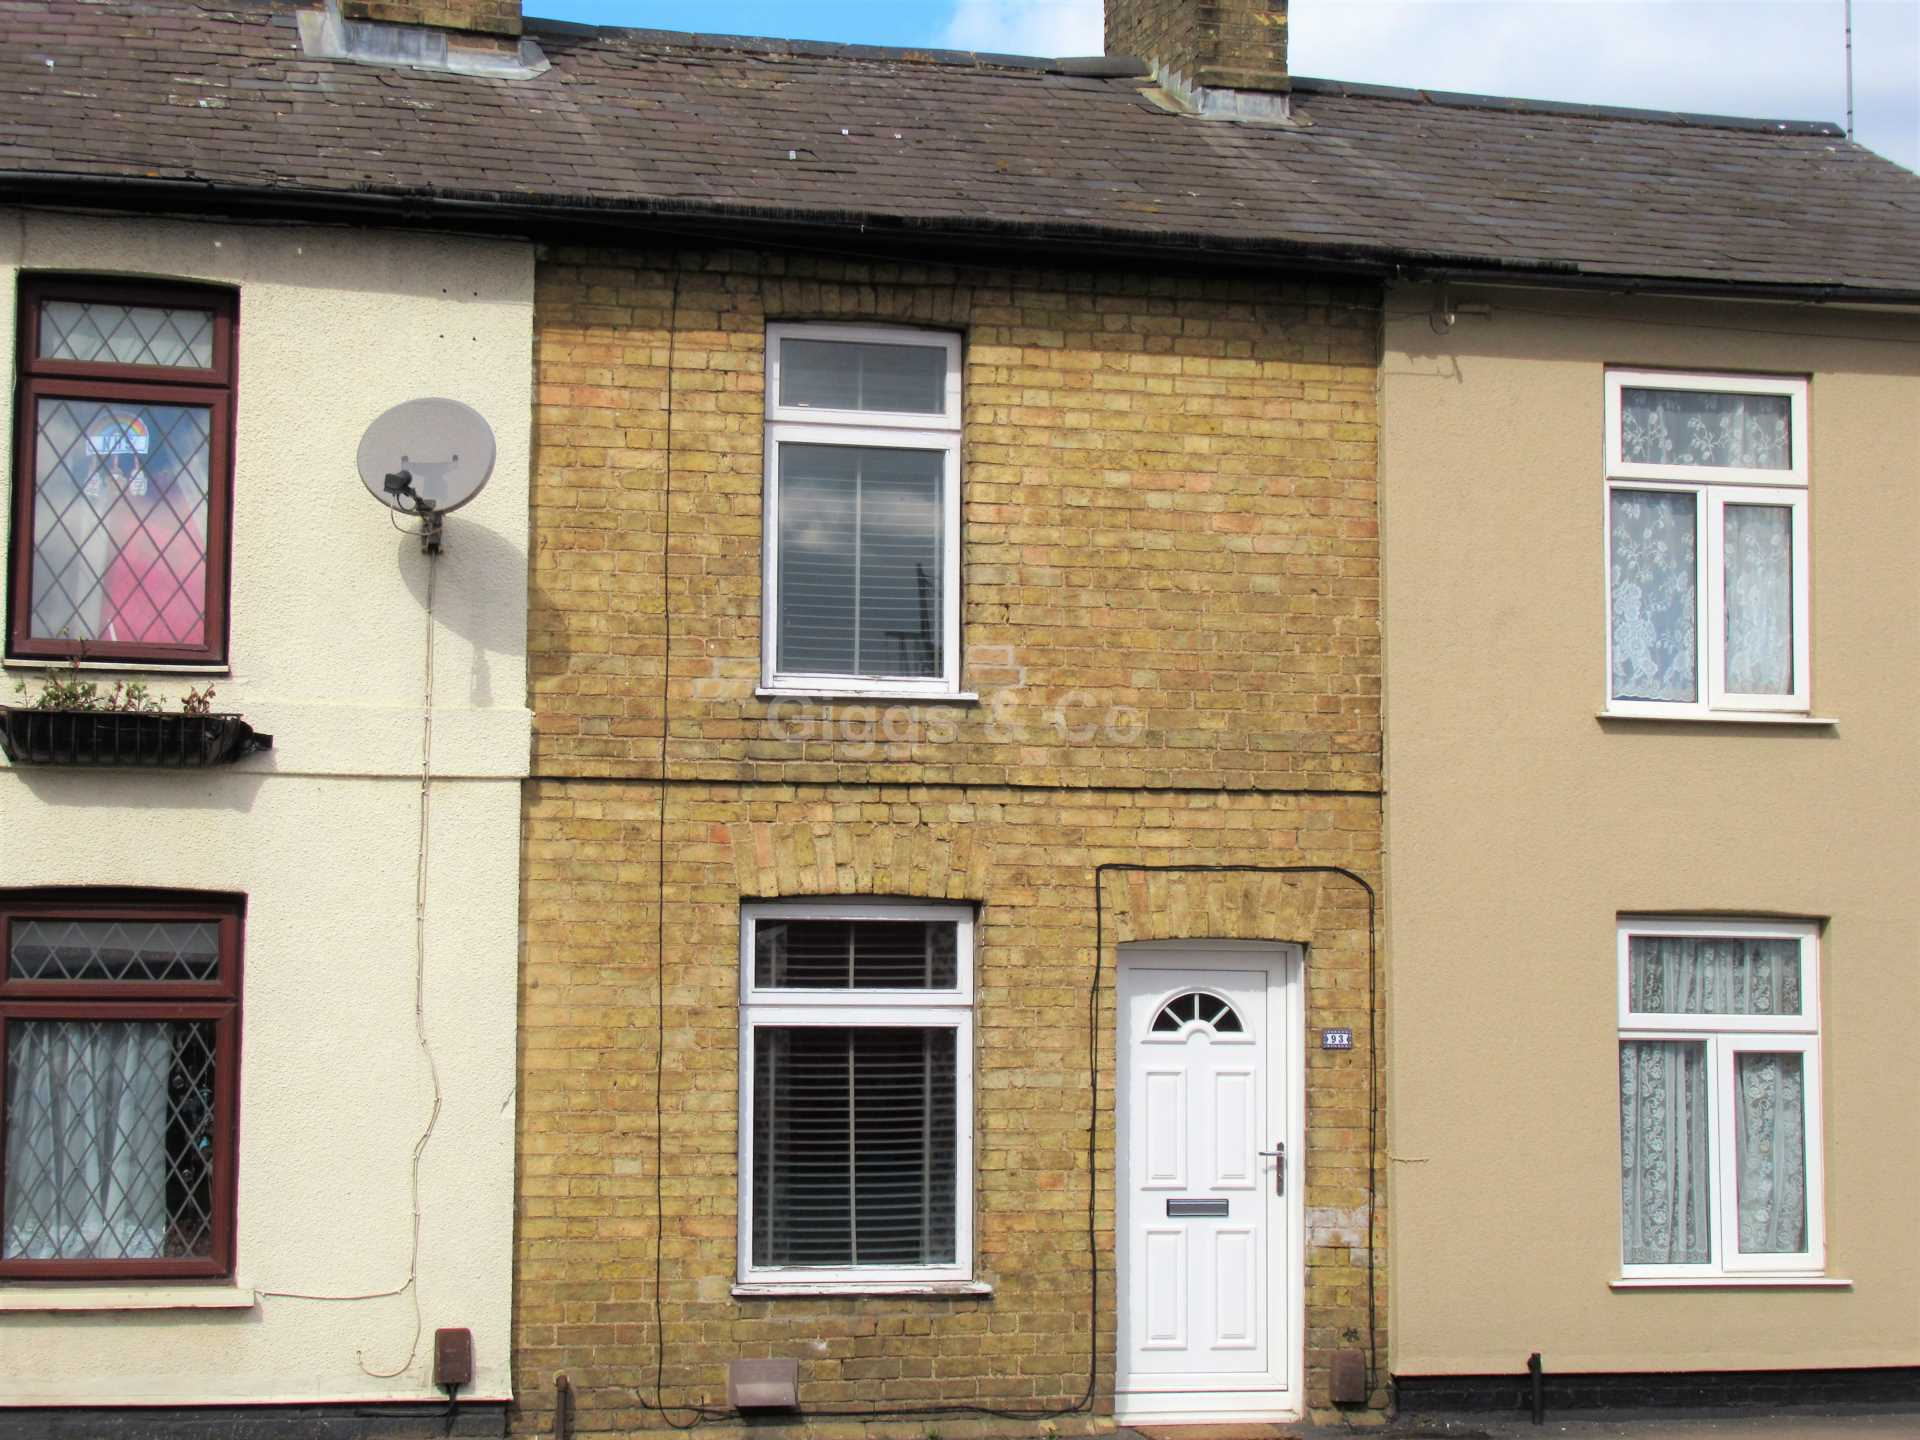 2 bed terraced house to rent in Huntingdon Street St.Neots, St Neots, PE19